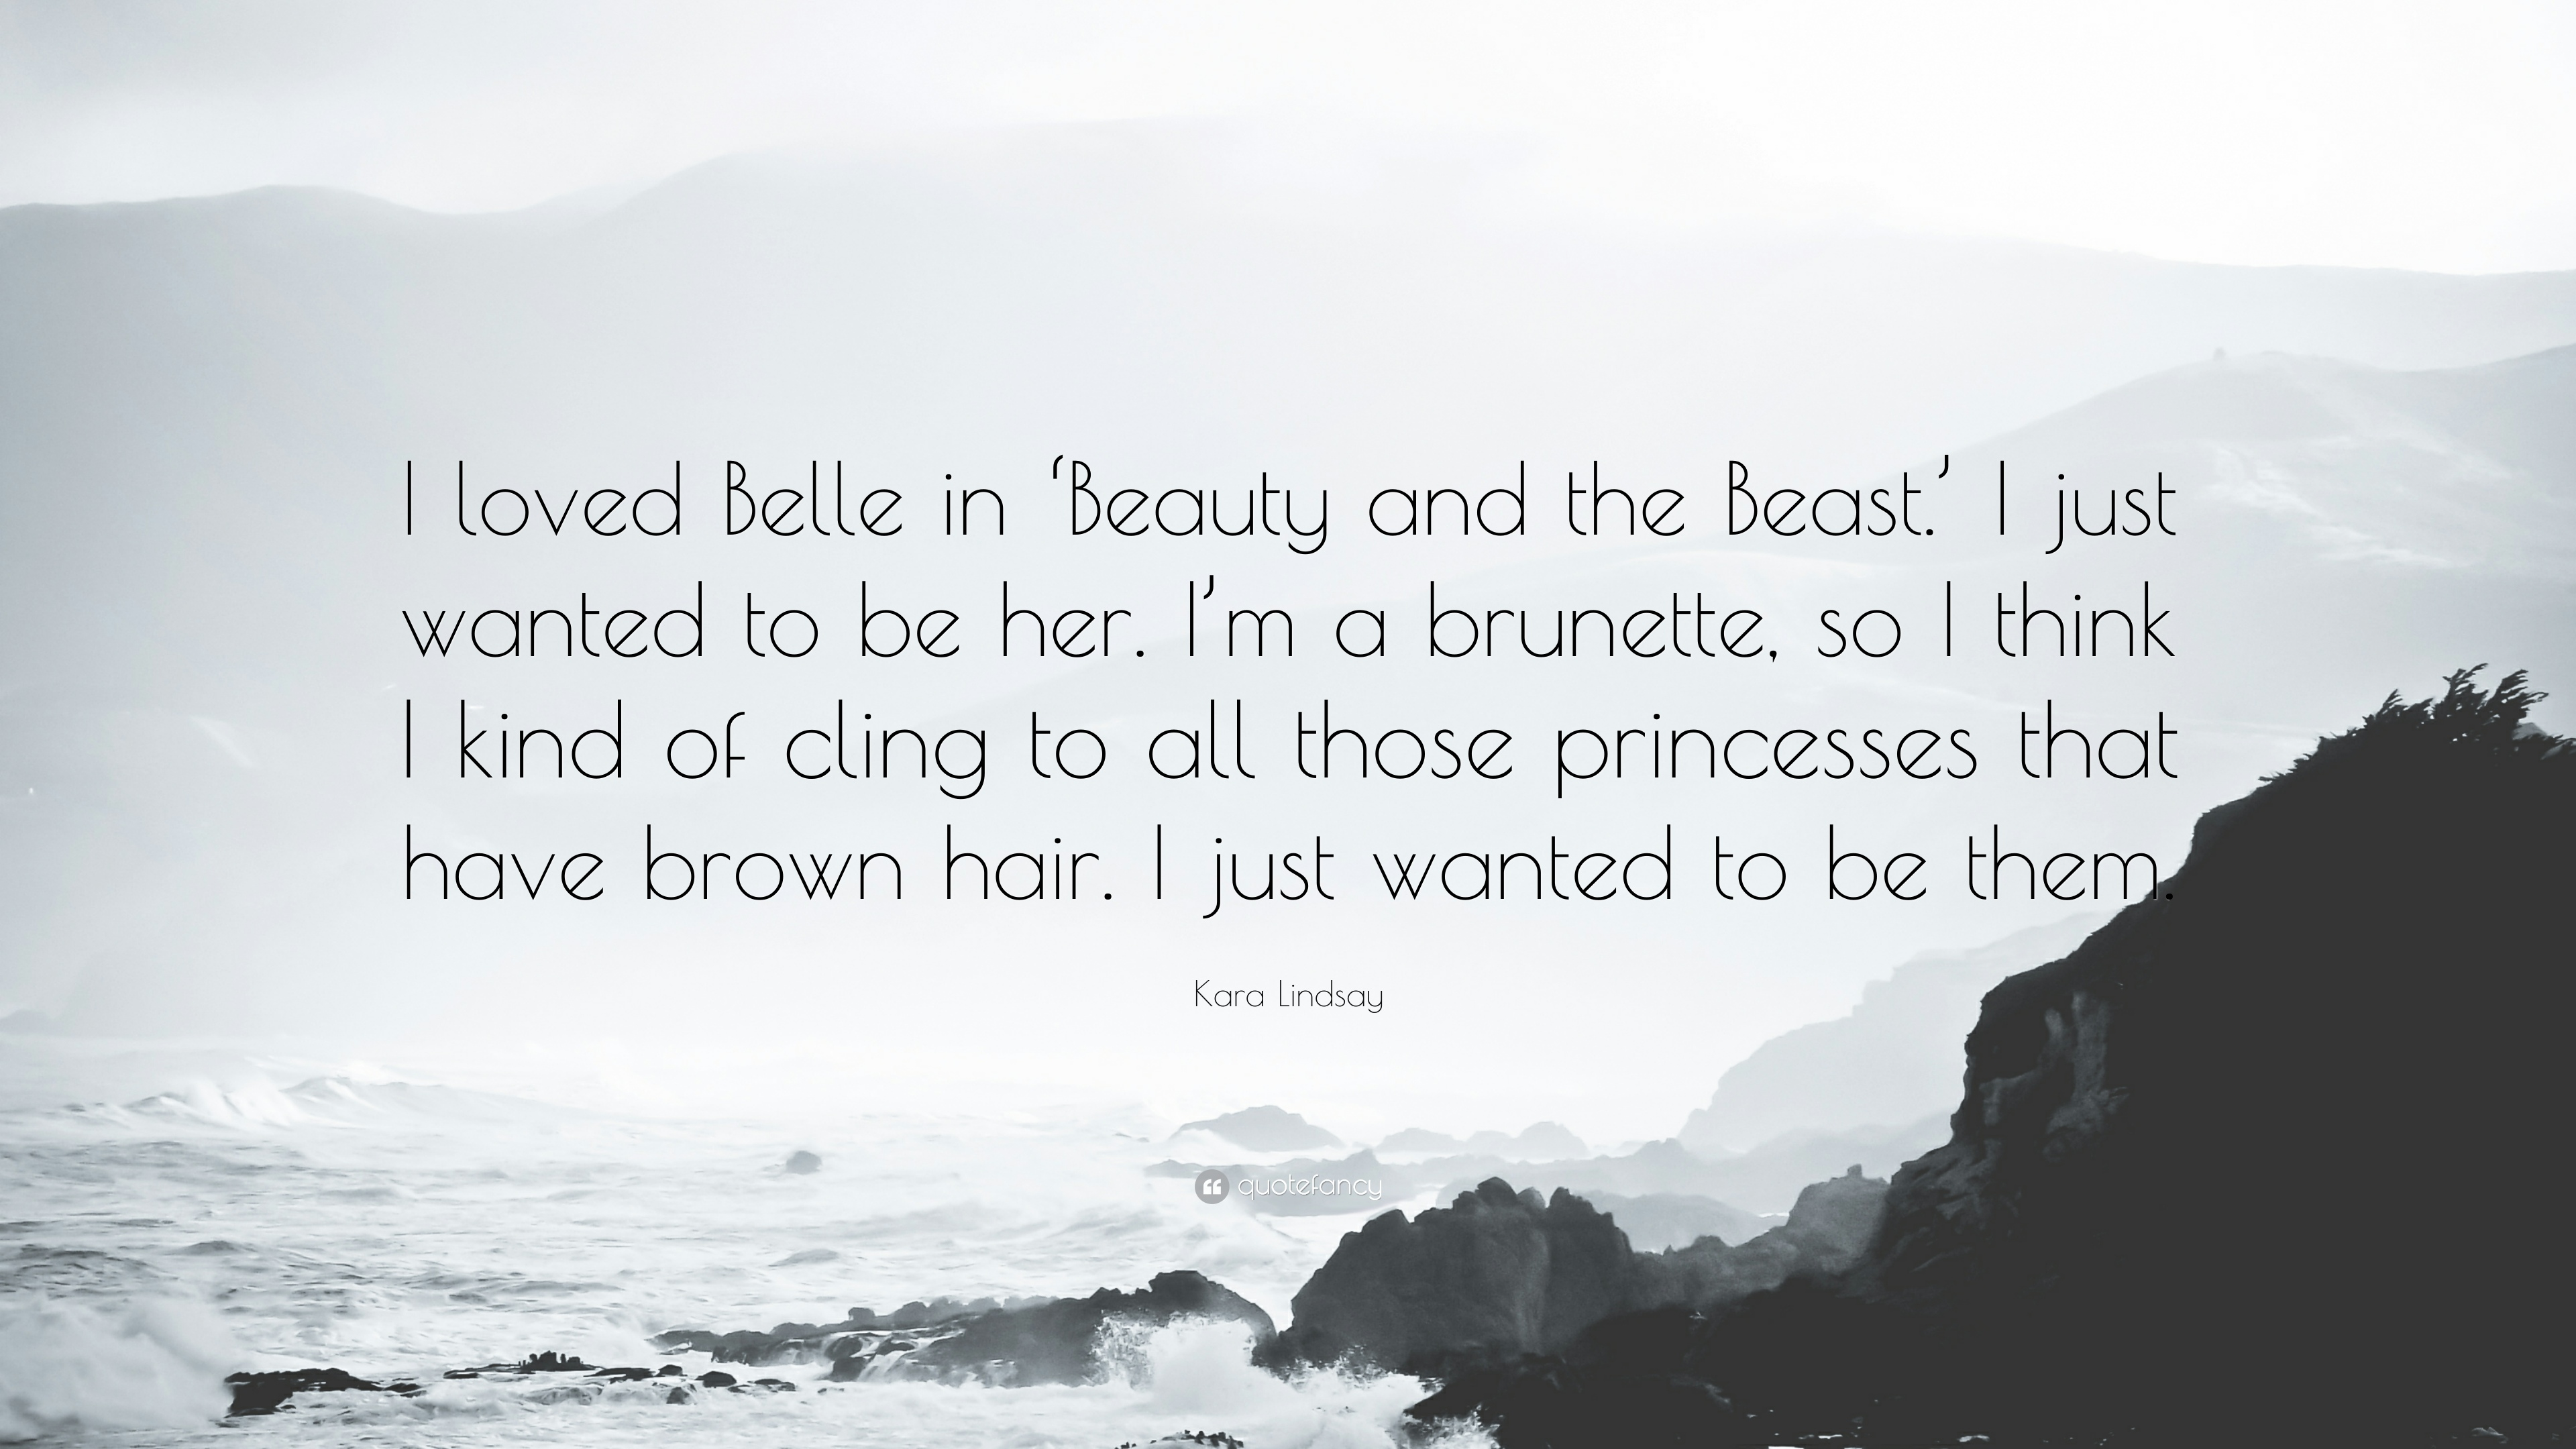 Kara lindsay quote i loved belle in beauty and the beast i just kara lindsay quote i loved belle in beauty and the beast voltagebd Image collections